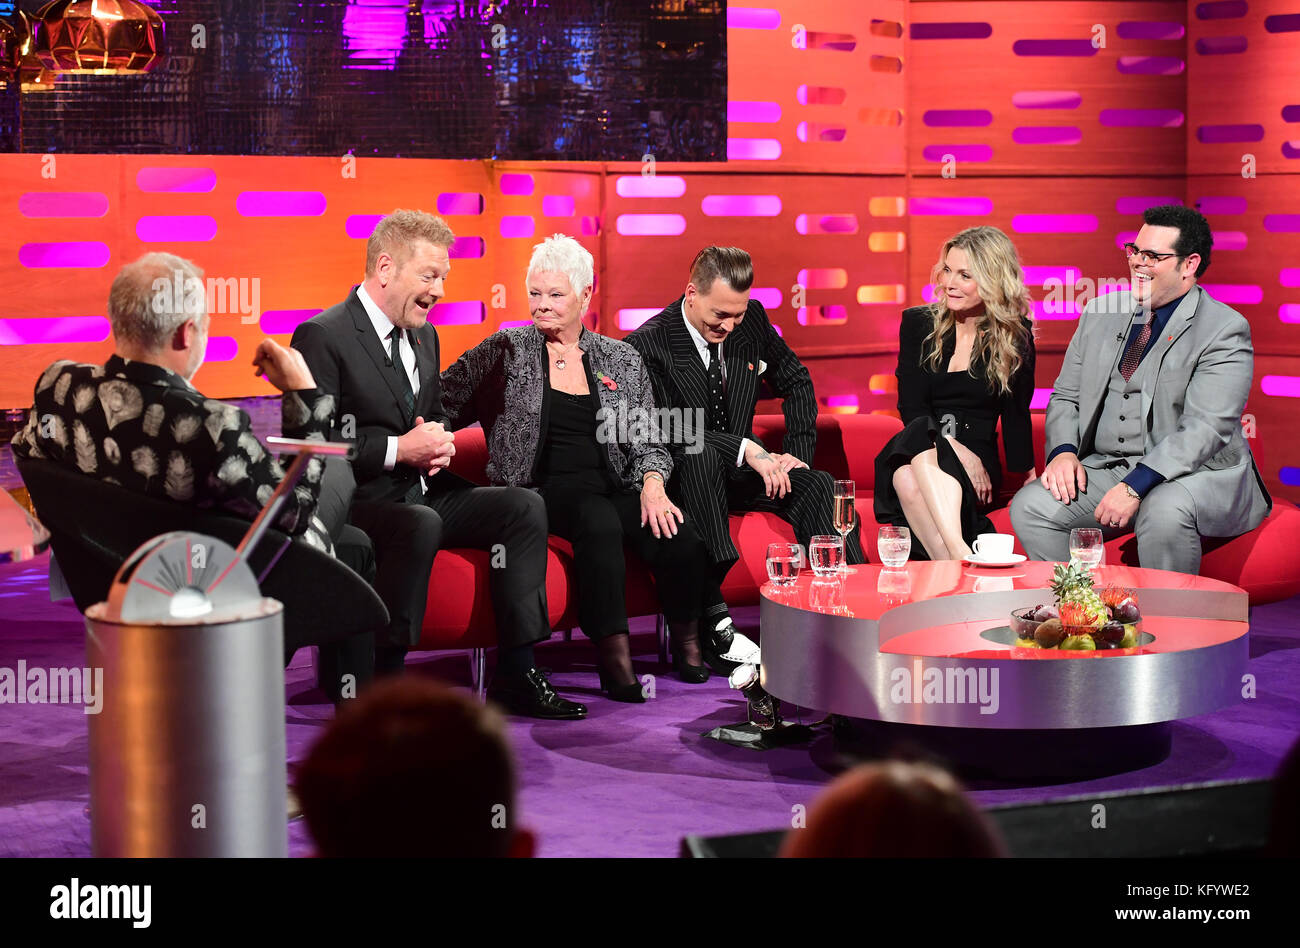 (From the left) Graham Norton, Sir Kenneth Branagh, Dame Judi Dench, Johnny Depp, Michelle Pfeiffer and Josh Gad appearing on the Graham Norton Show filmed at the London Studios, London. Stock Photo